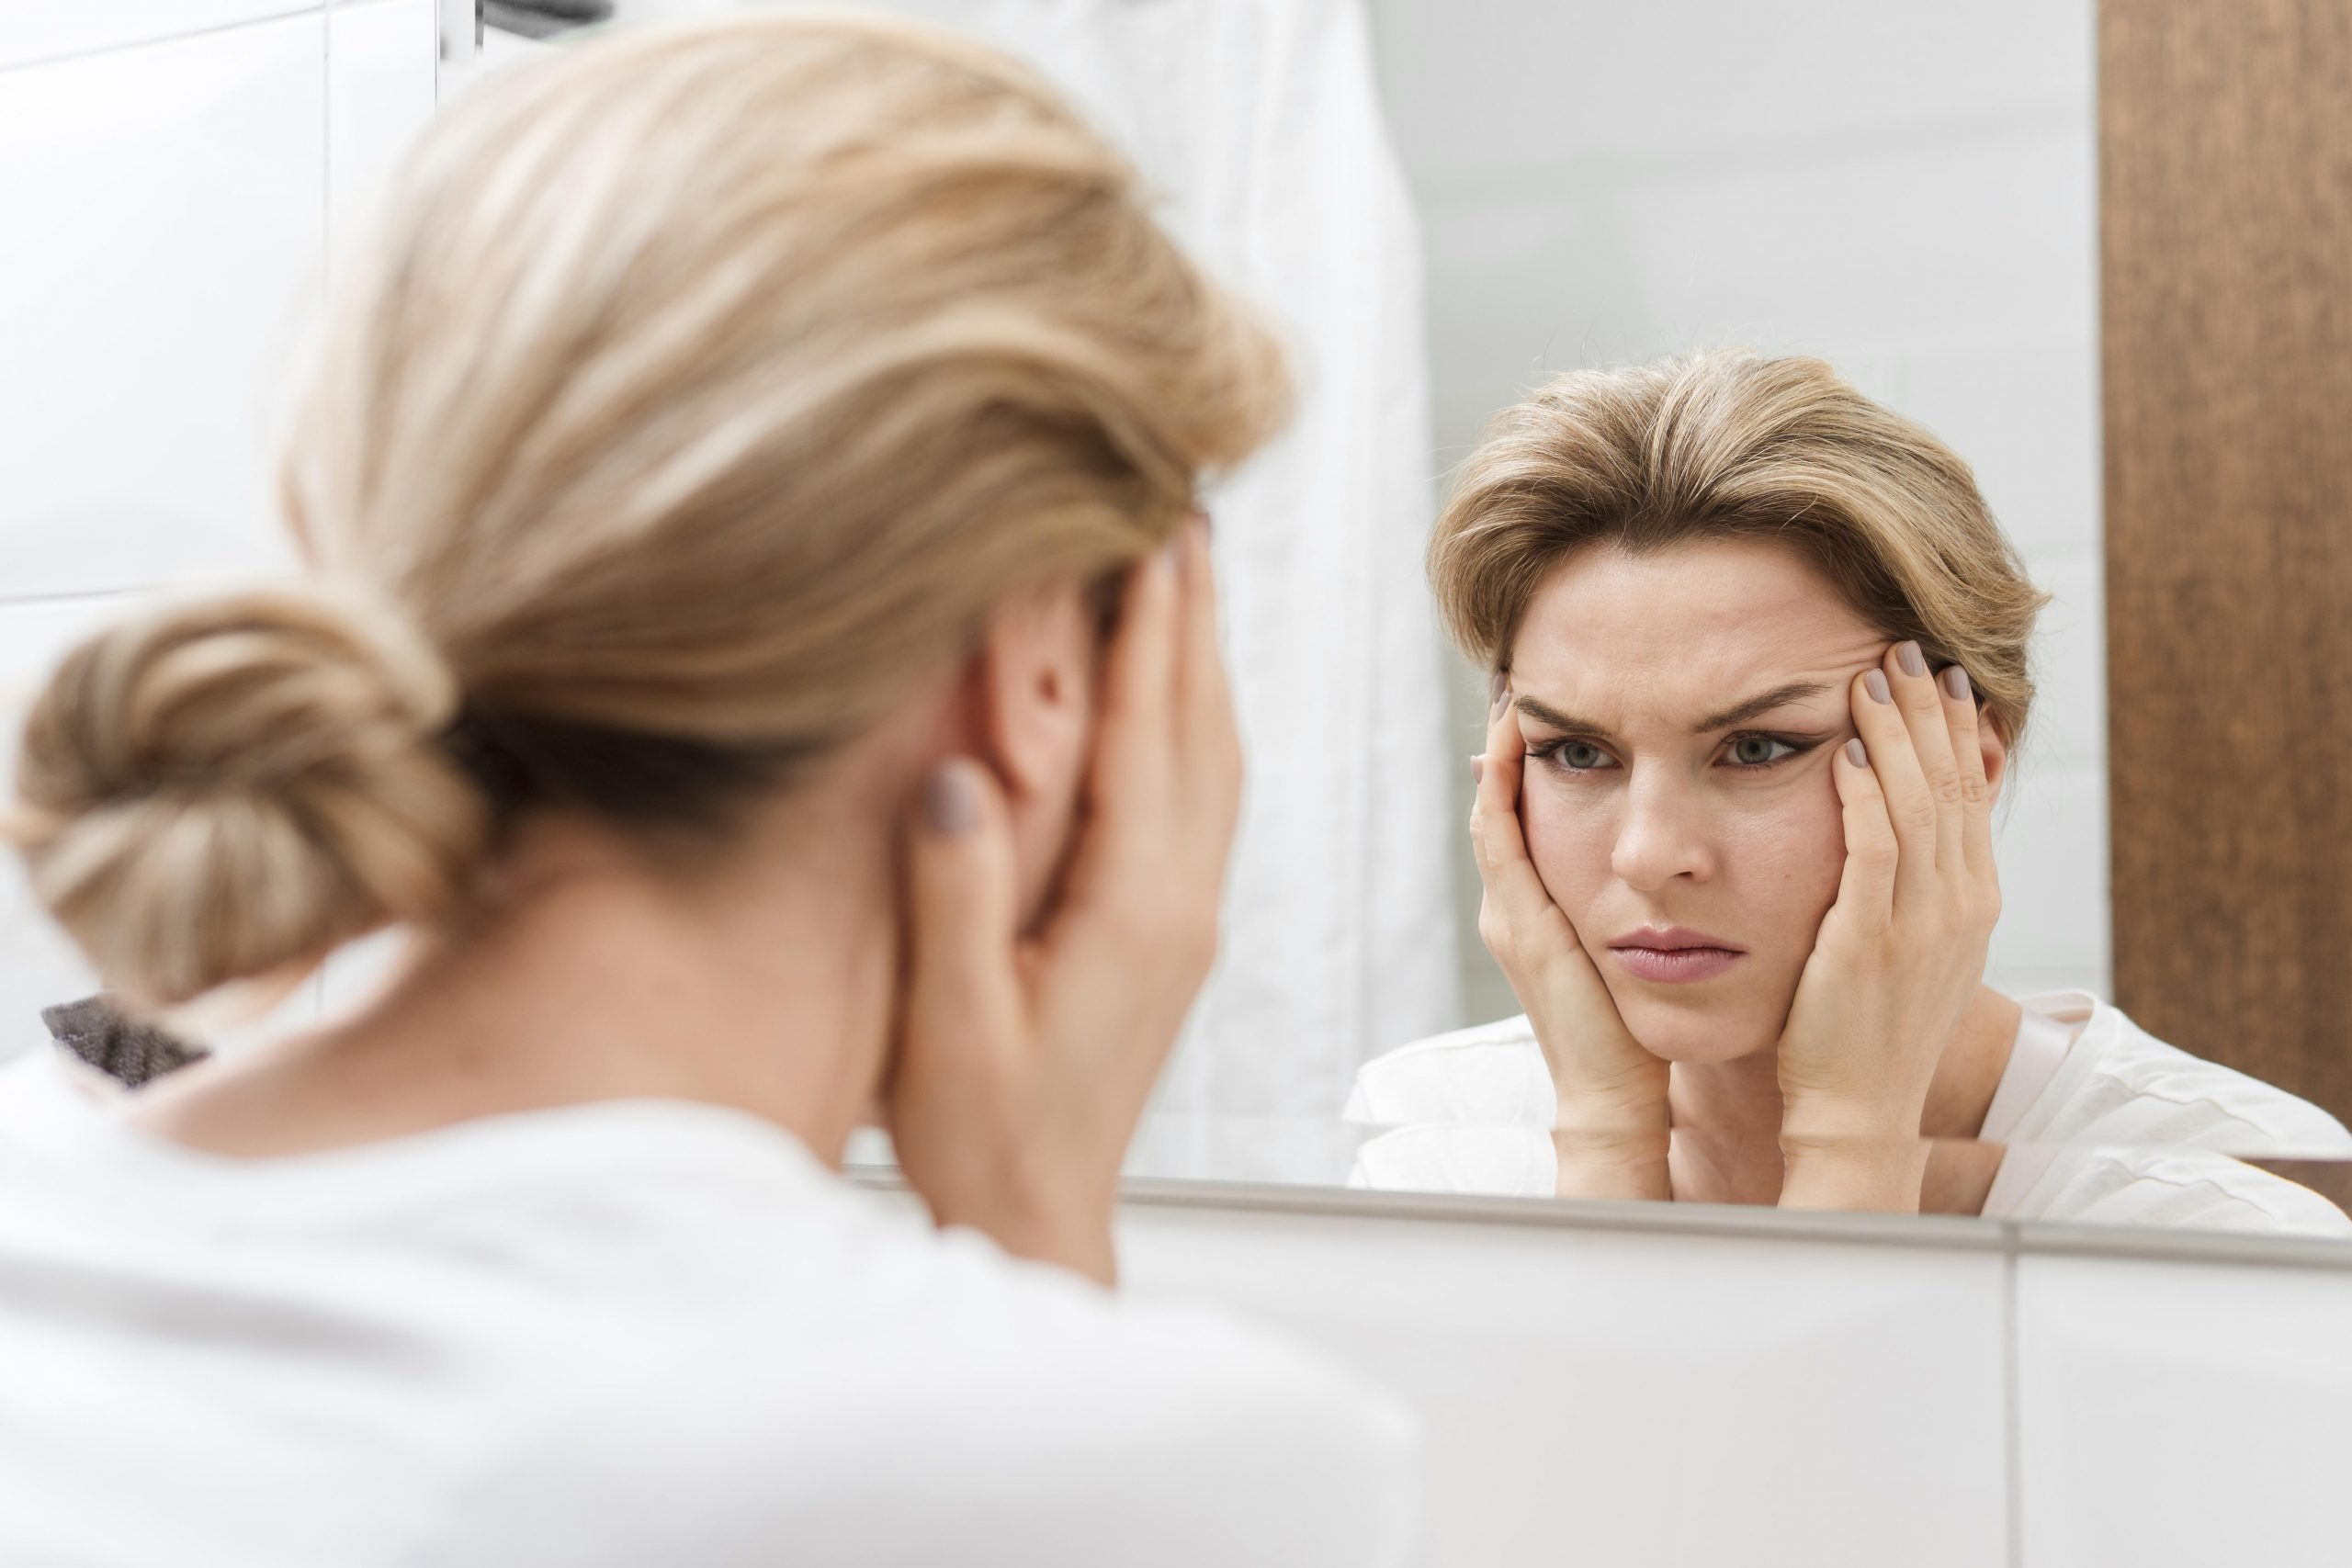 What are the visible effects  of facial aging?